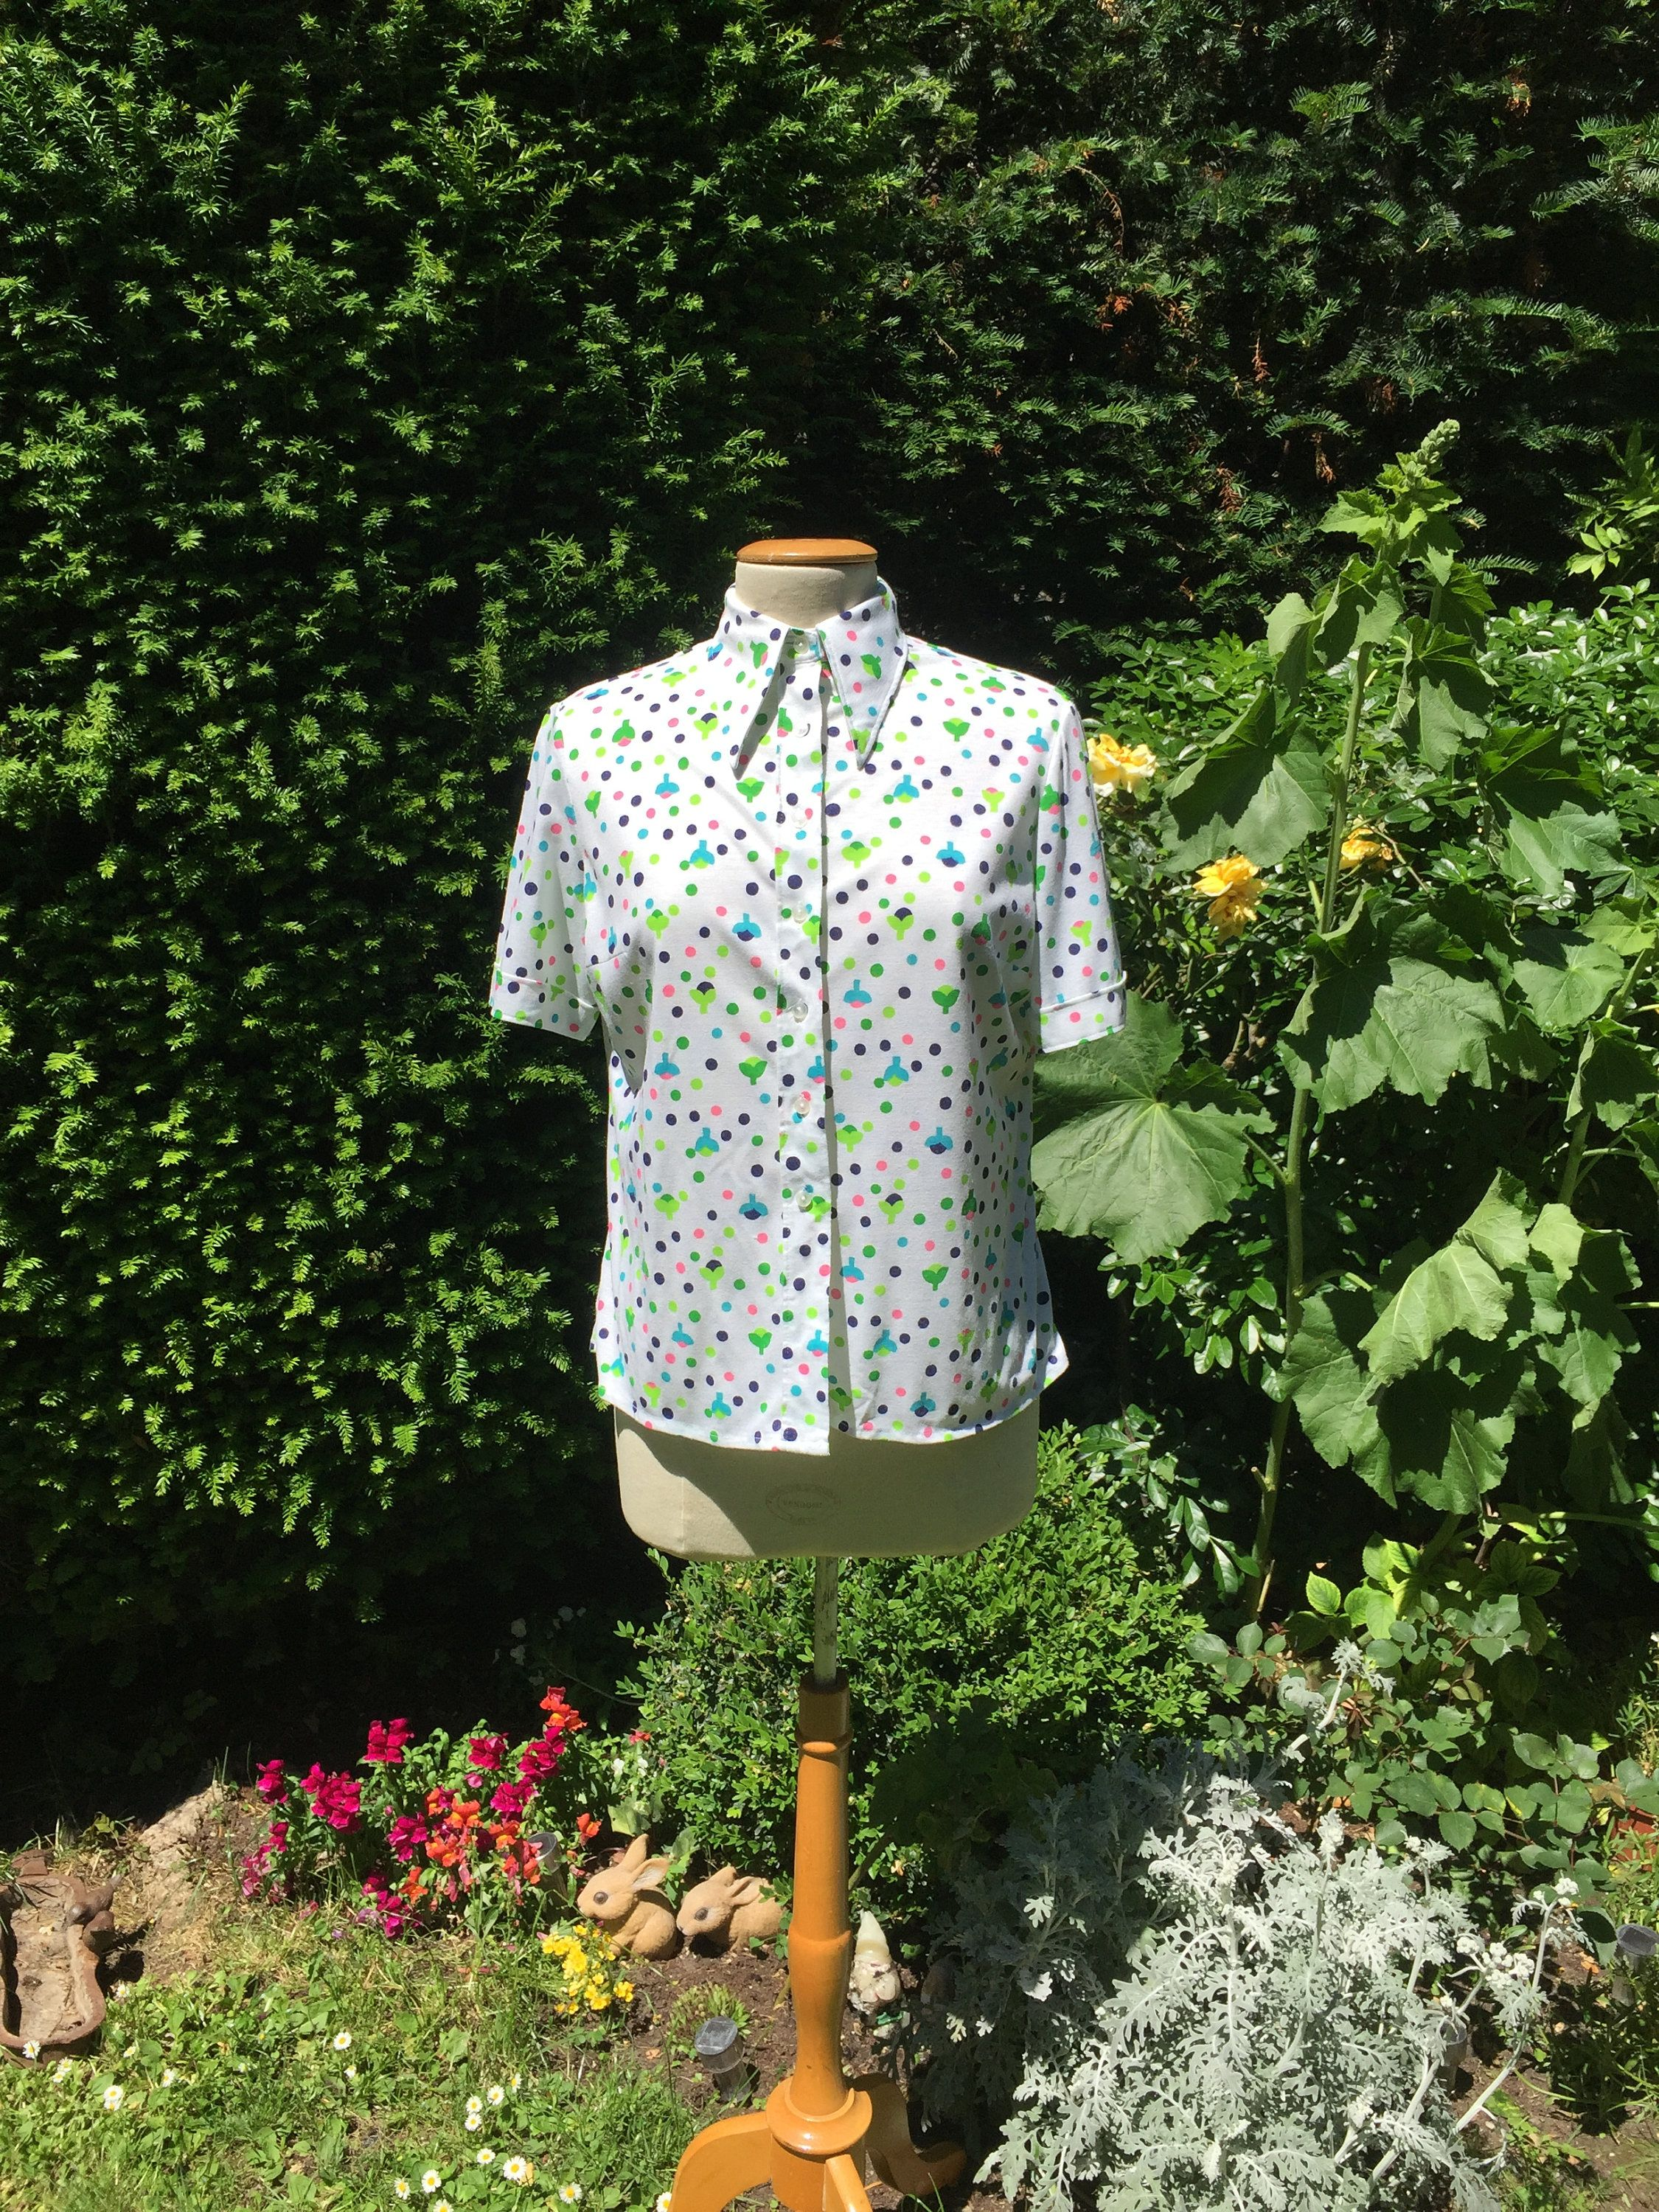 Size medium Fun and cute vintage shirt. Funky vintage 1970/'s cotton short sleeves blouse with flowers and spots by Clavi\u00e8res Paris